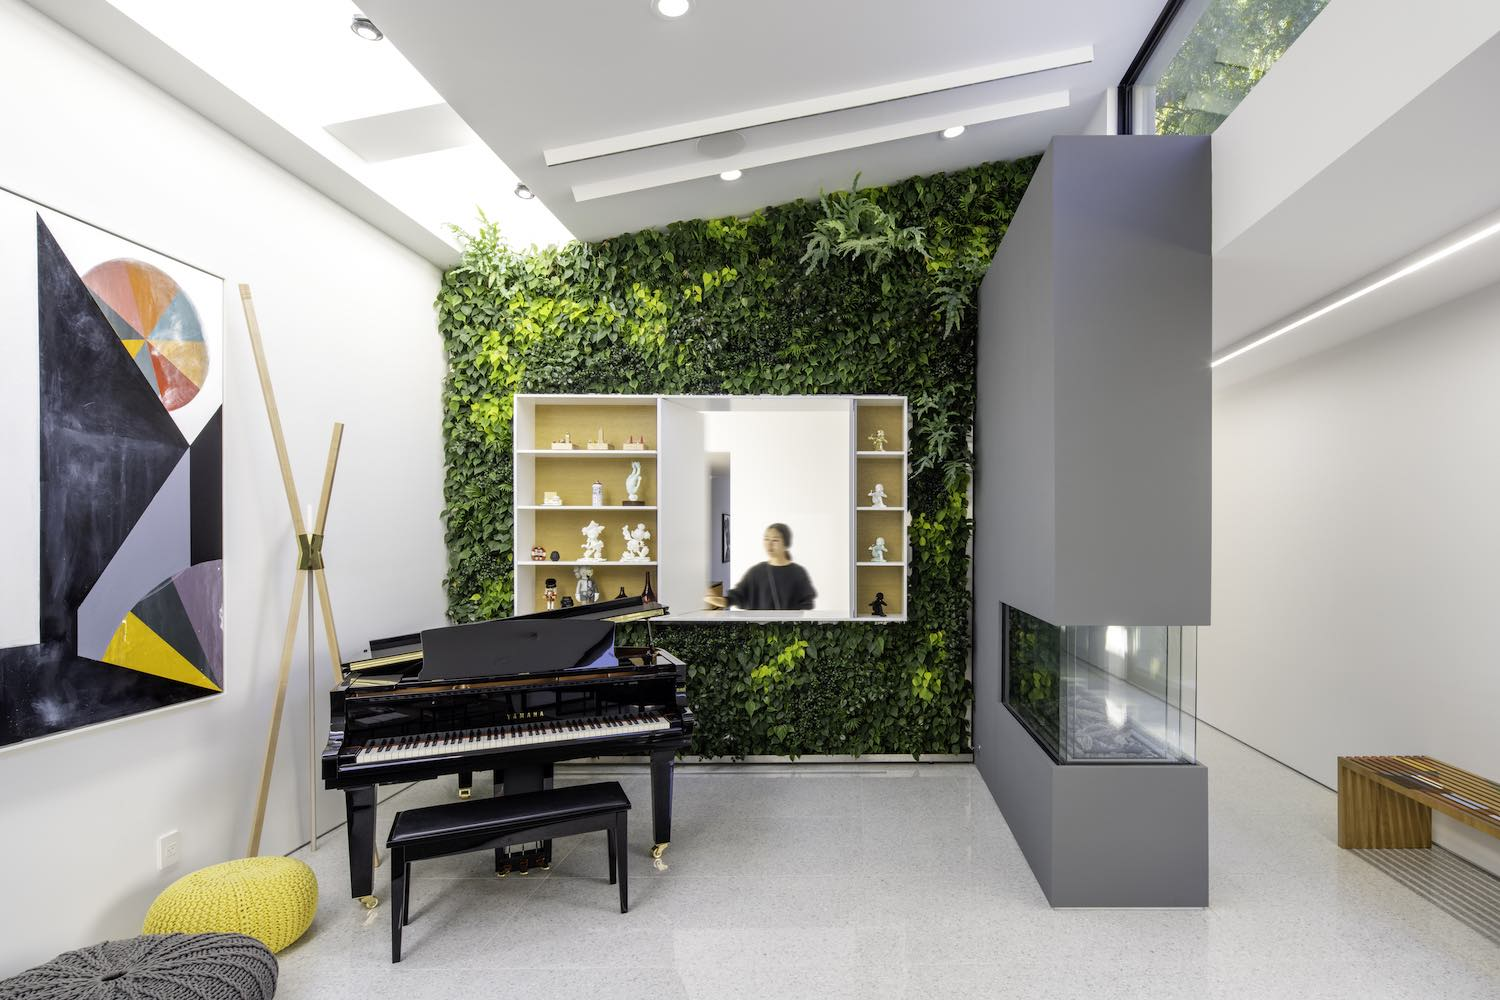 piano in the room